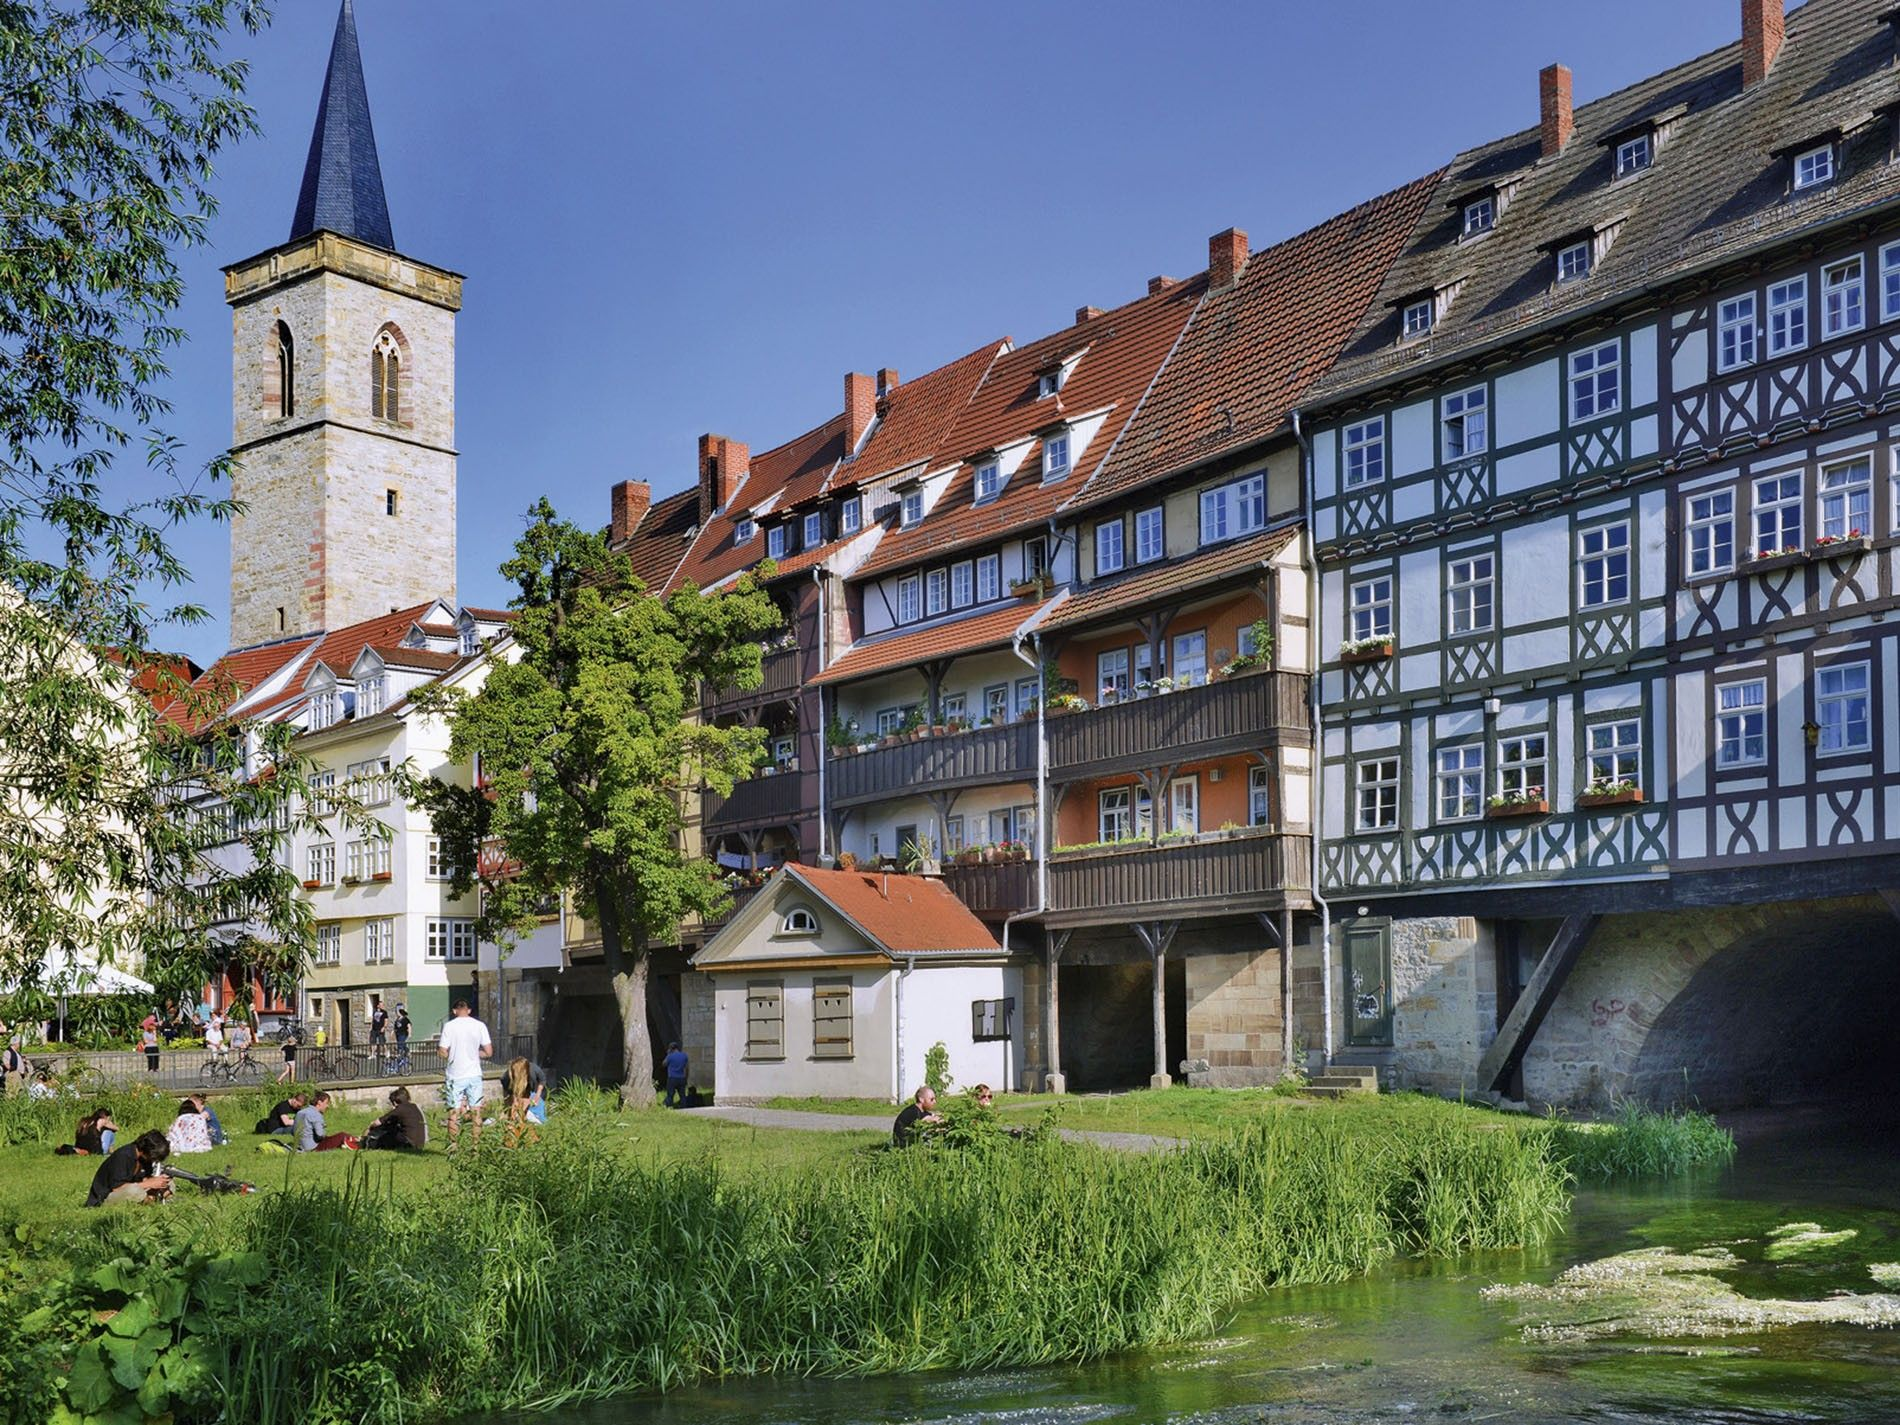 Erfurt Tourismus & Marketing